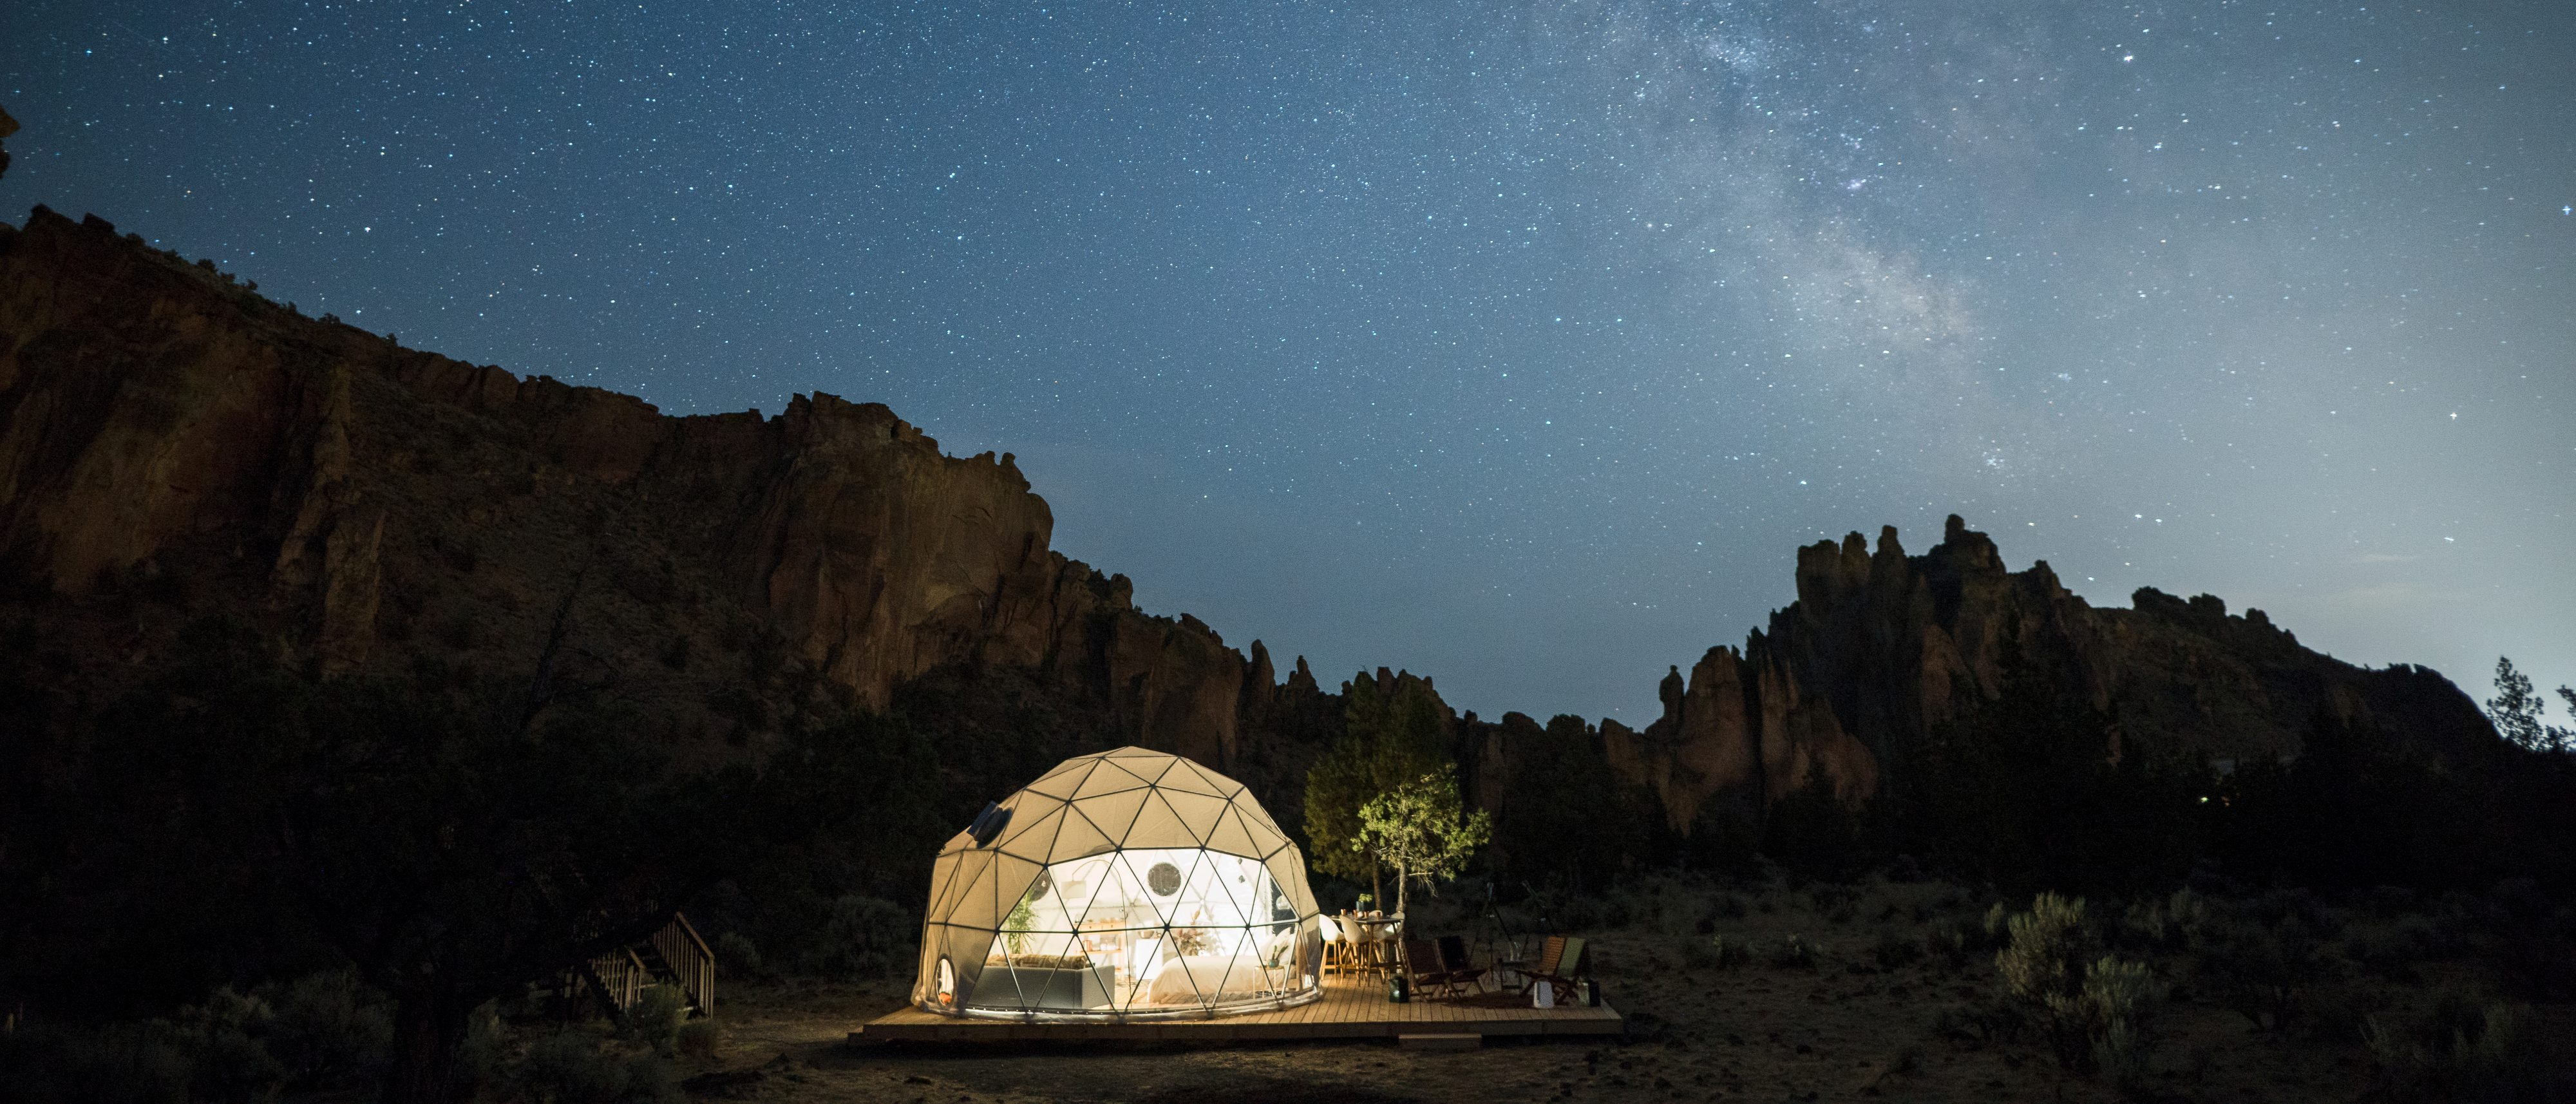 The geodesic dome at night airbnb competition